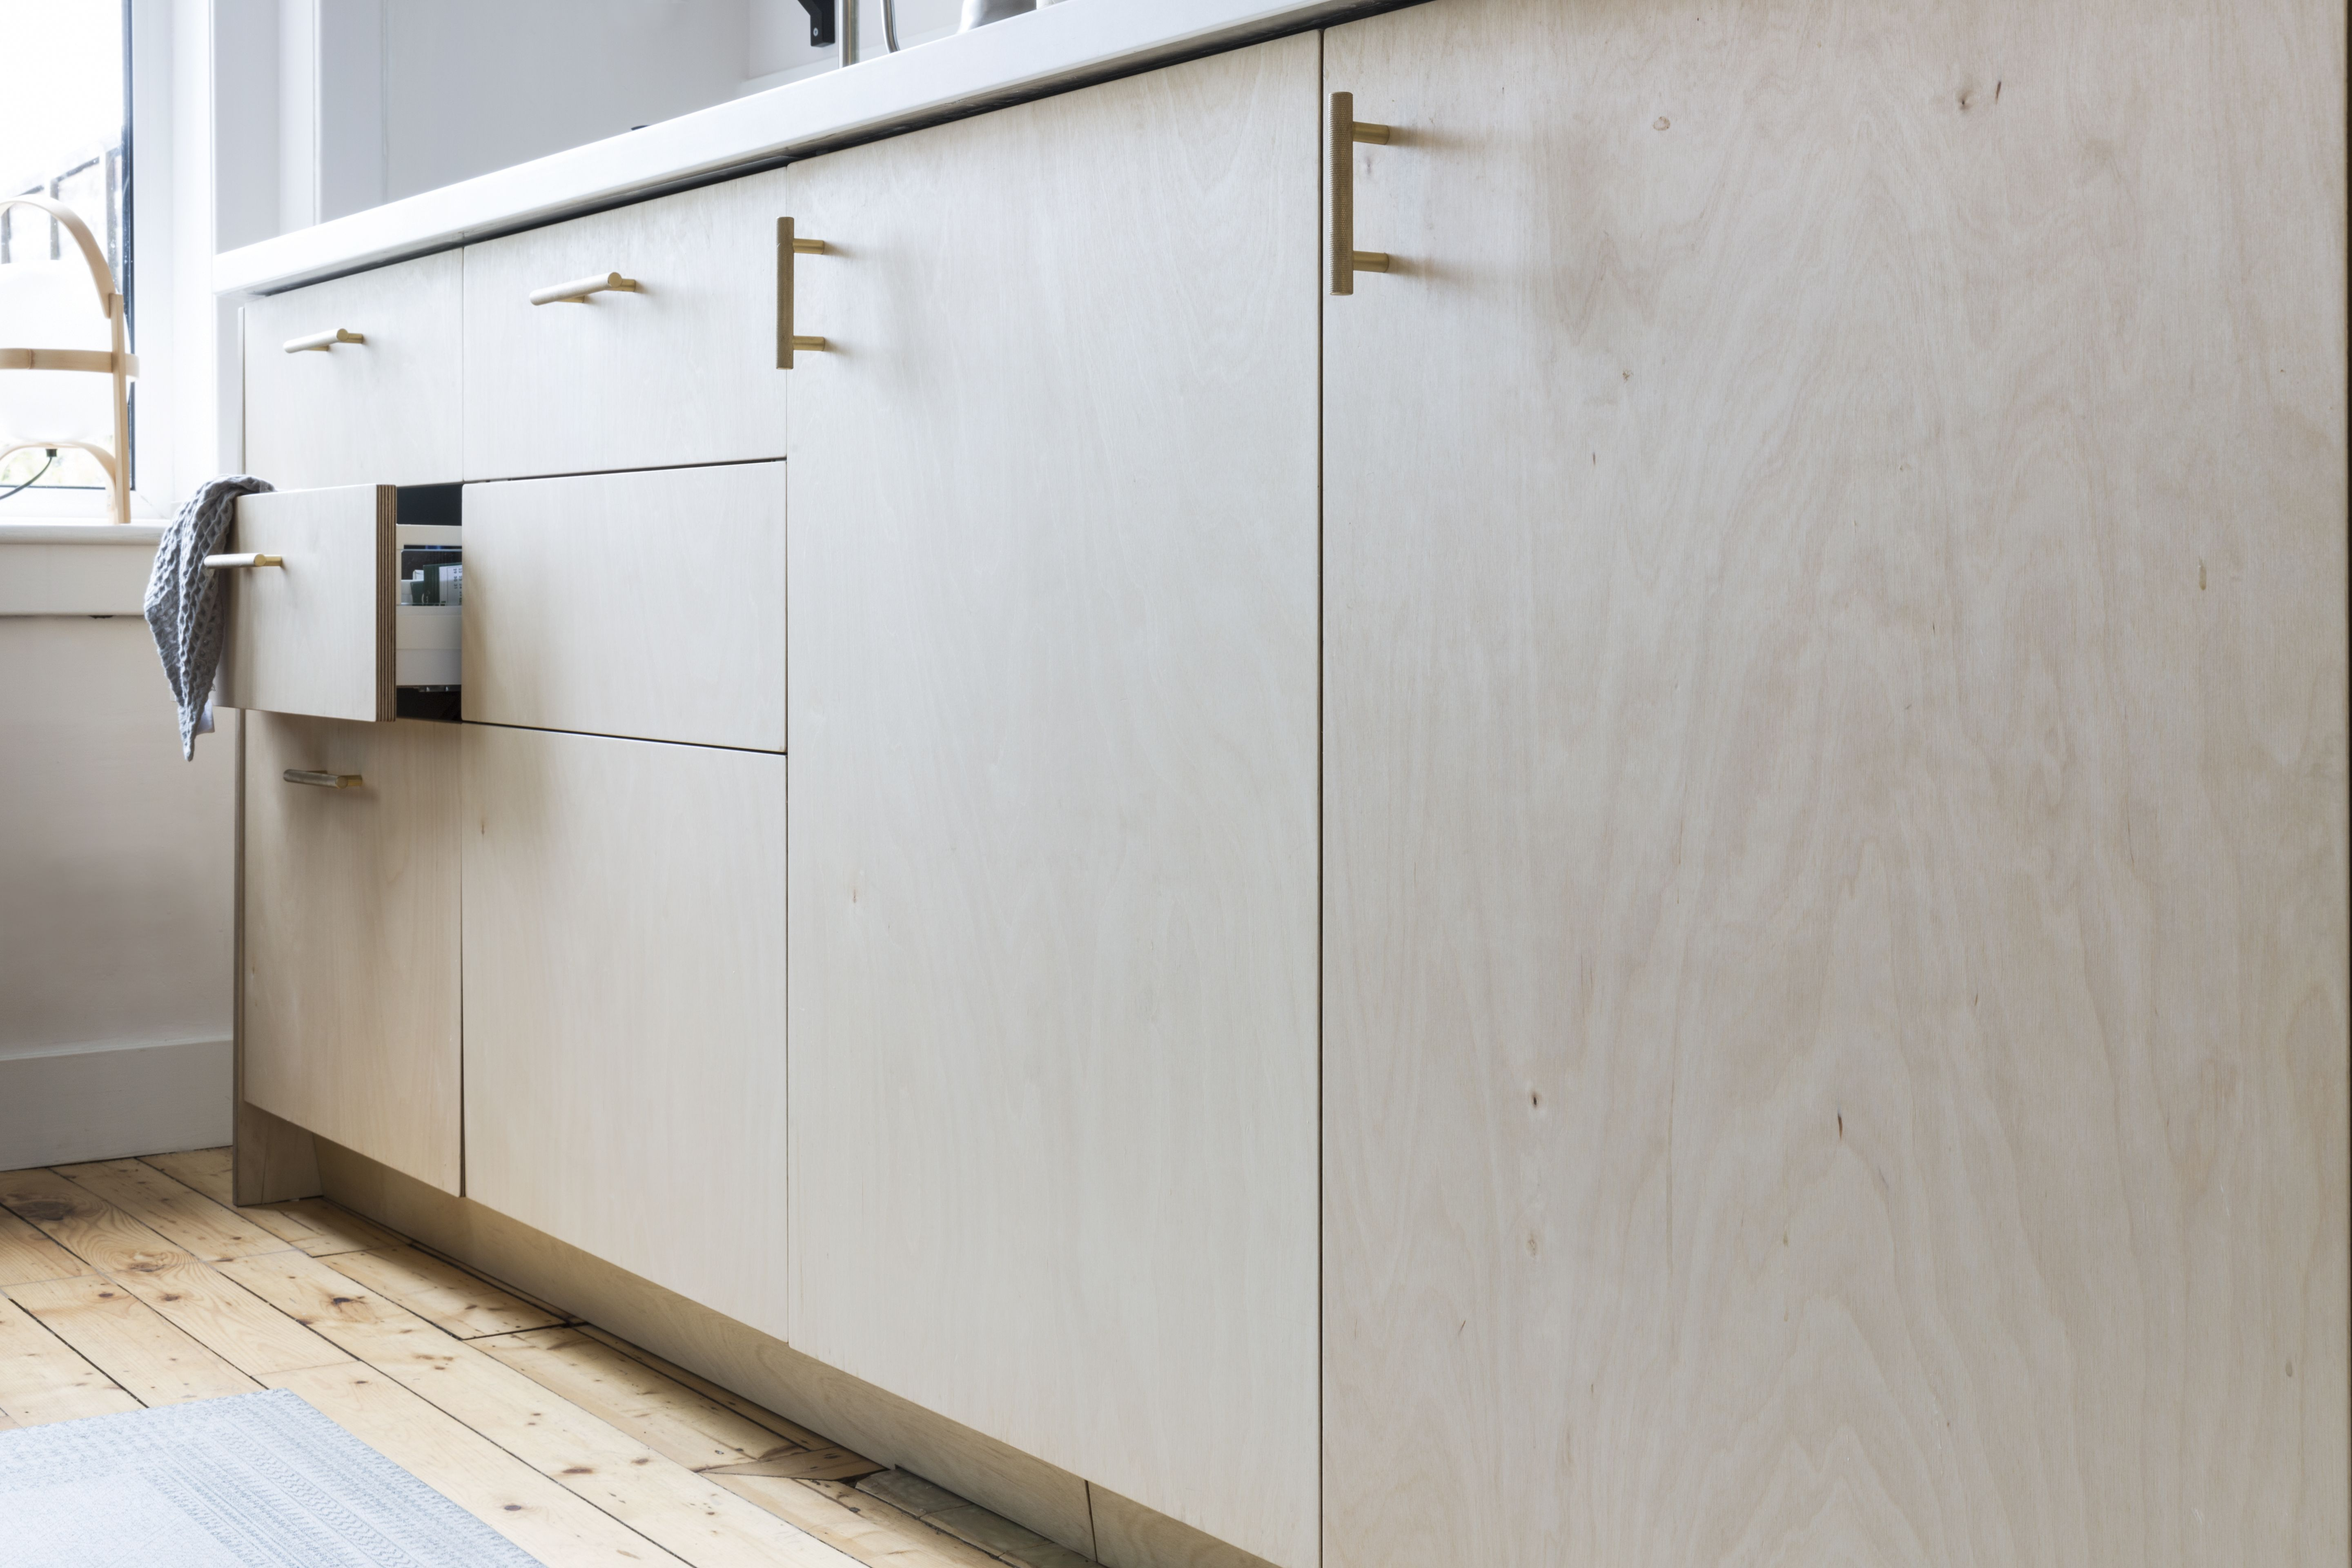 birch plywood and brass kitchen custom fronts and ikea cabinets rh in pinterest com